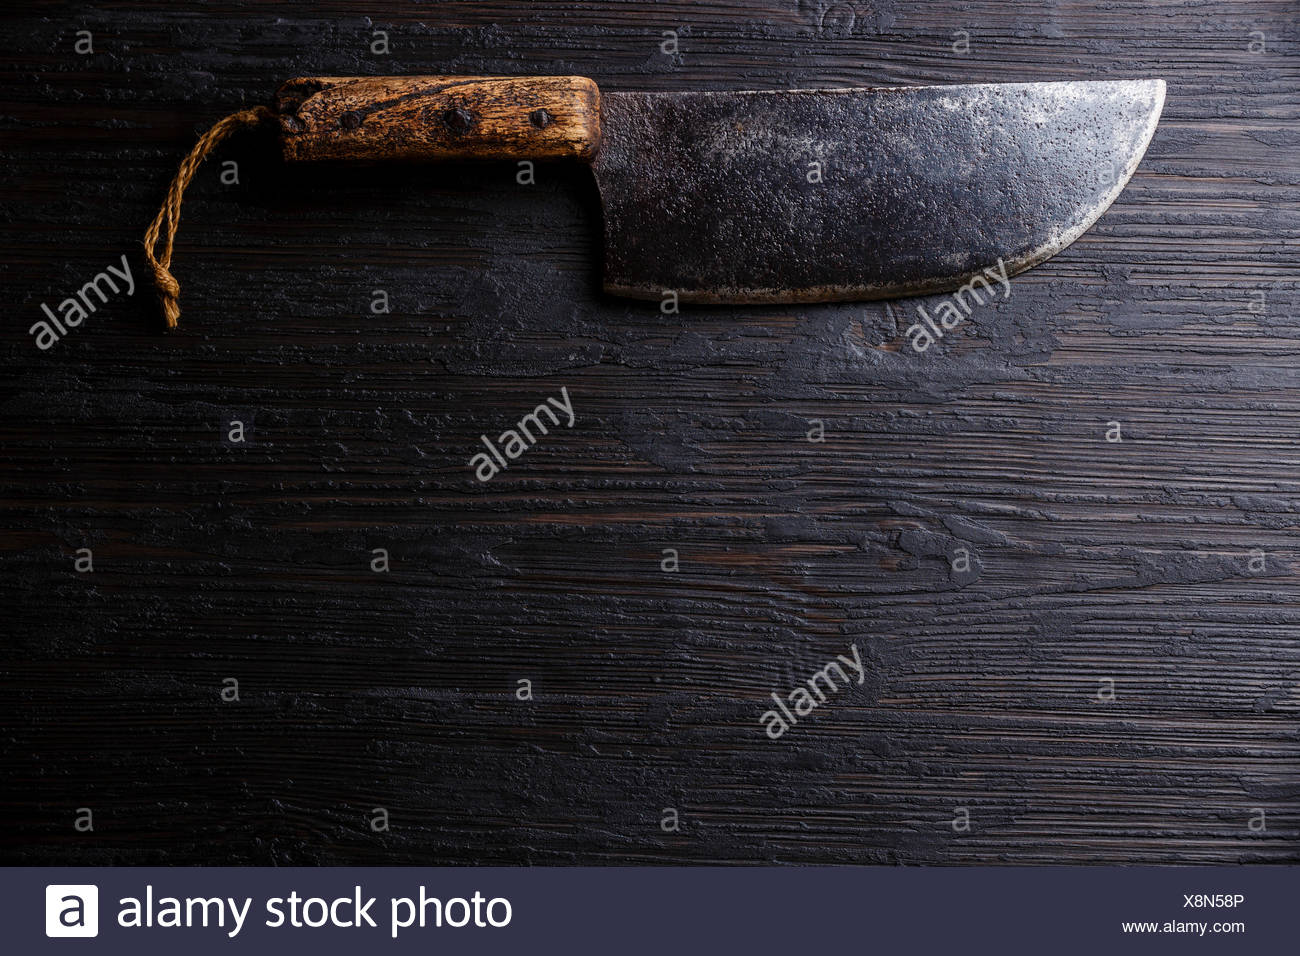 Vintage Butcher meat cleaver knife on dark burned wooden background copy space - Stock Image